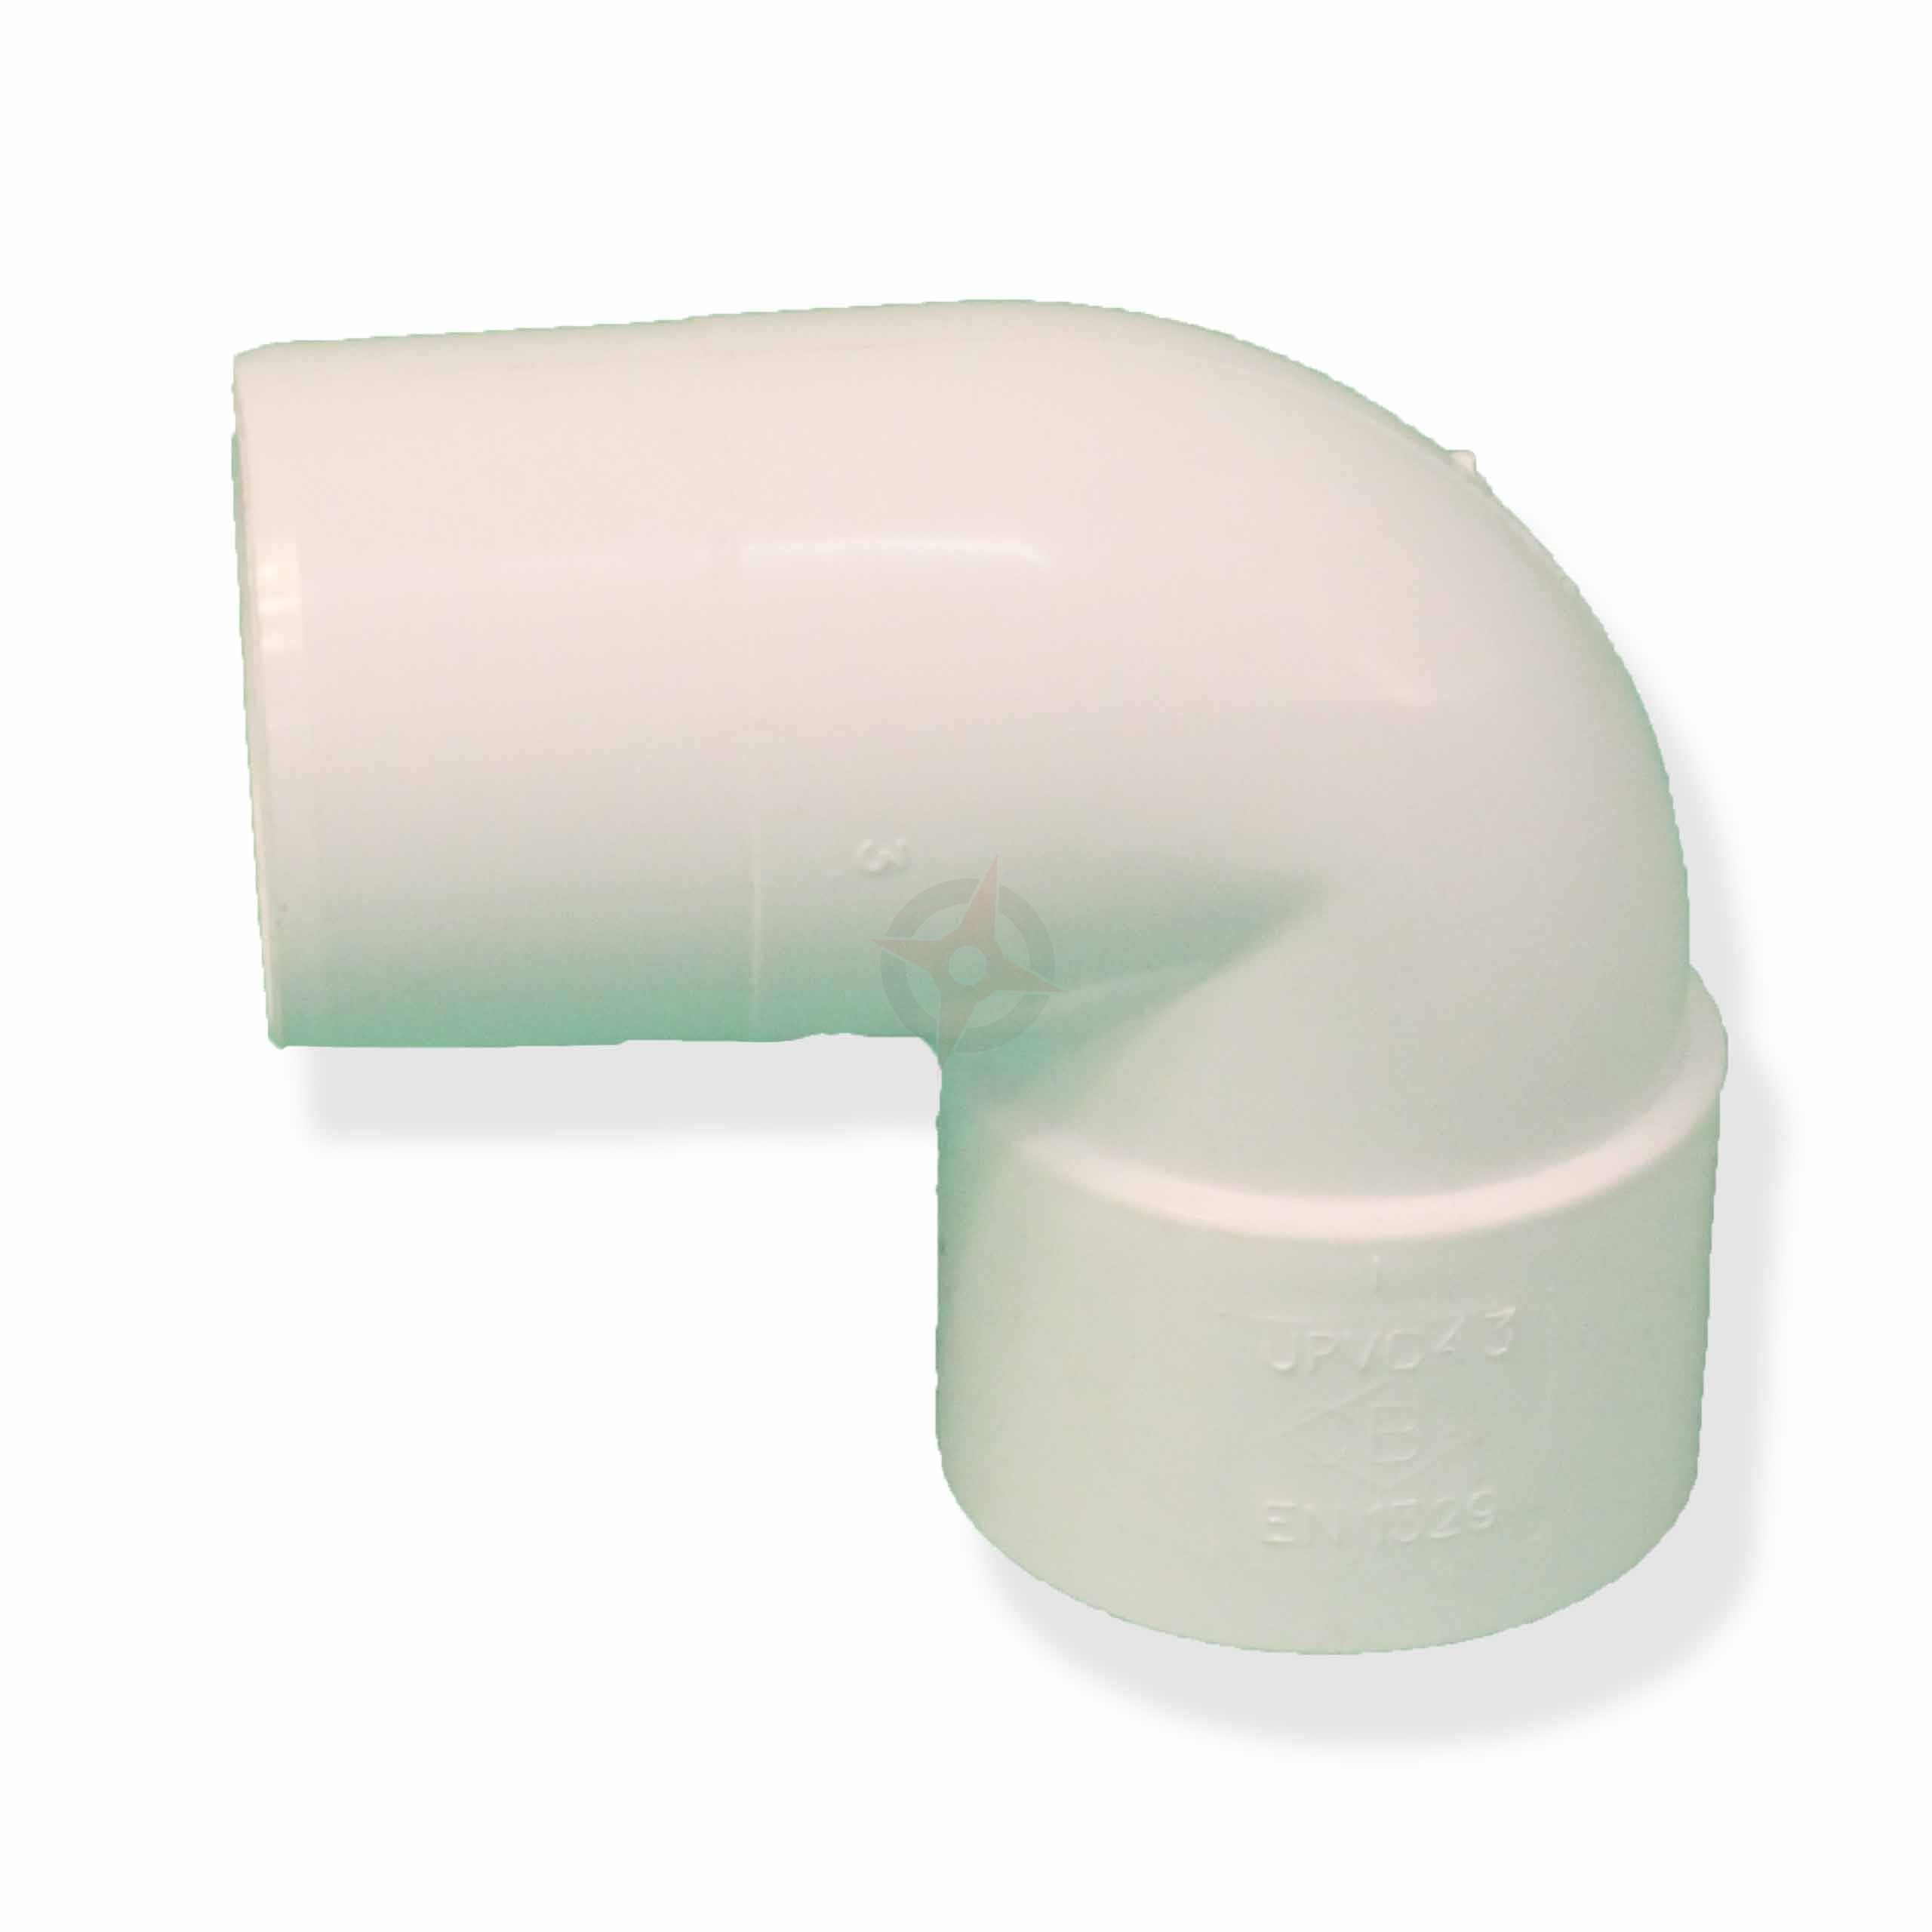 White 43mm Solvent Waste 90 Degree Spigot Bend